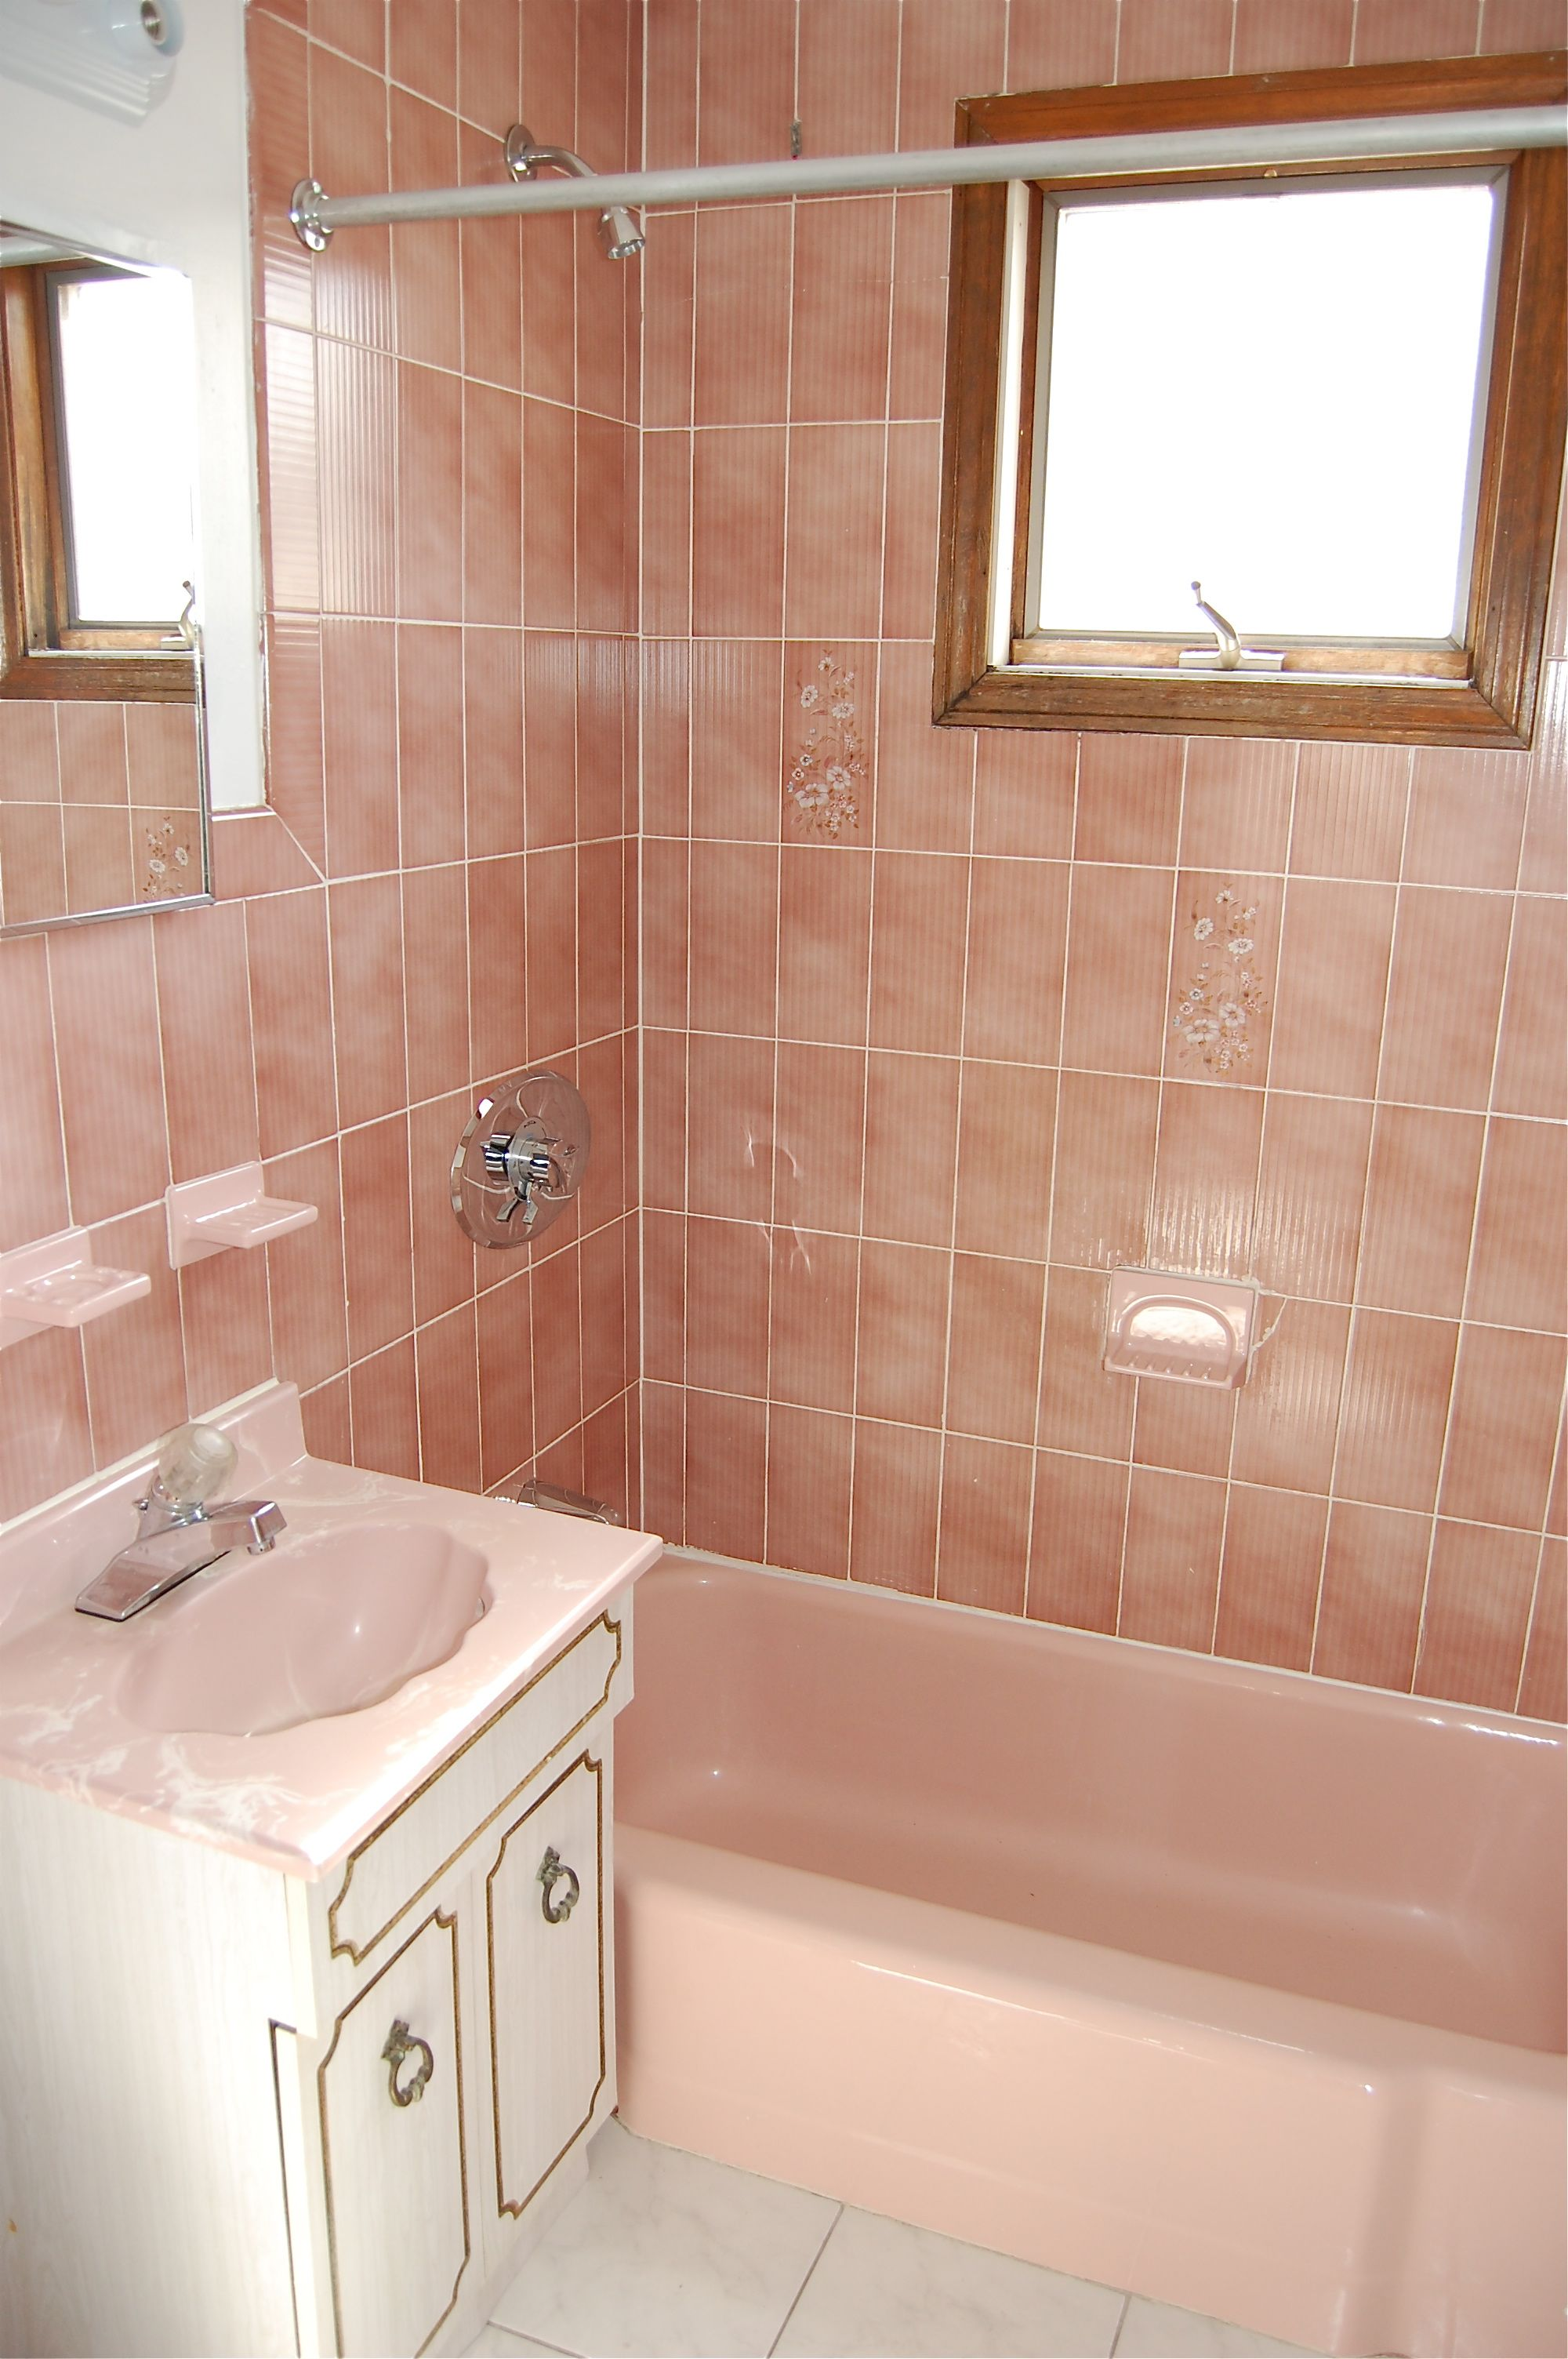 40 vintage pink bathroom tile ideas and pictures. Black Bedroom Furniture Sets. Home Design Ideas